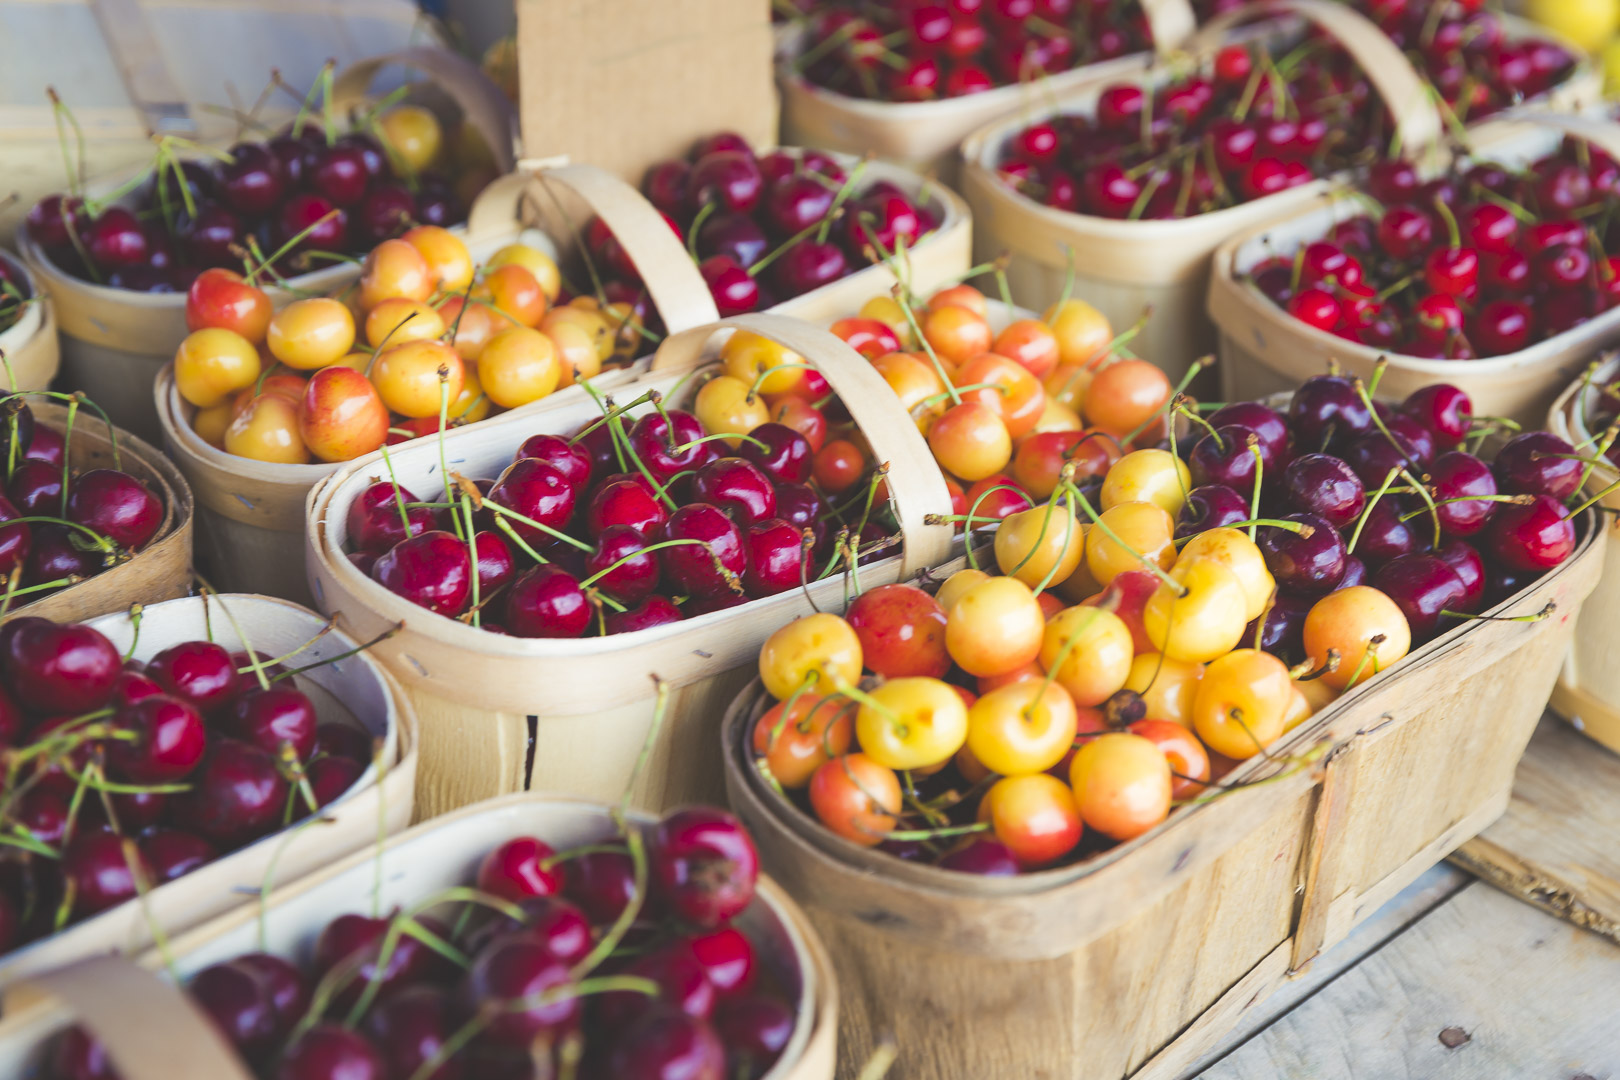 St Jacobs Farmers' Market Cherries.jpg